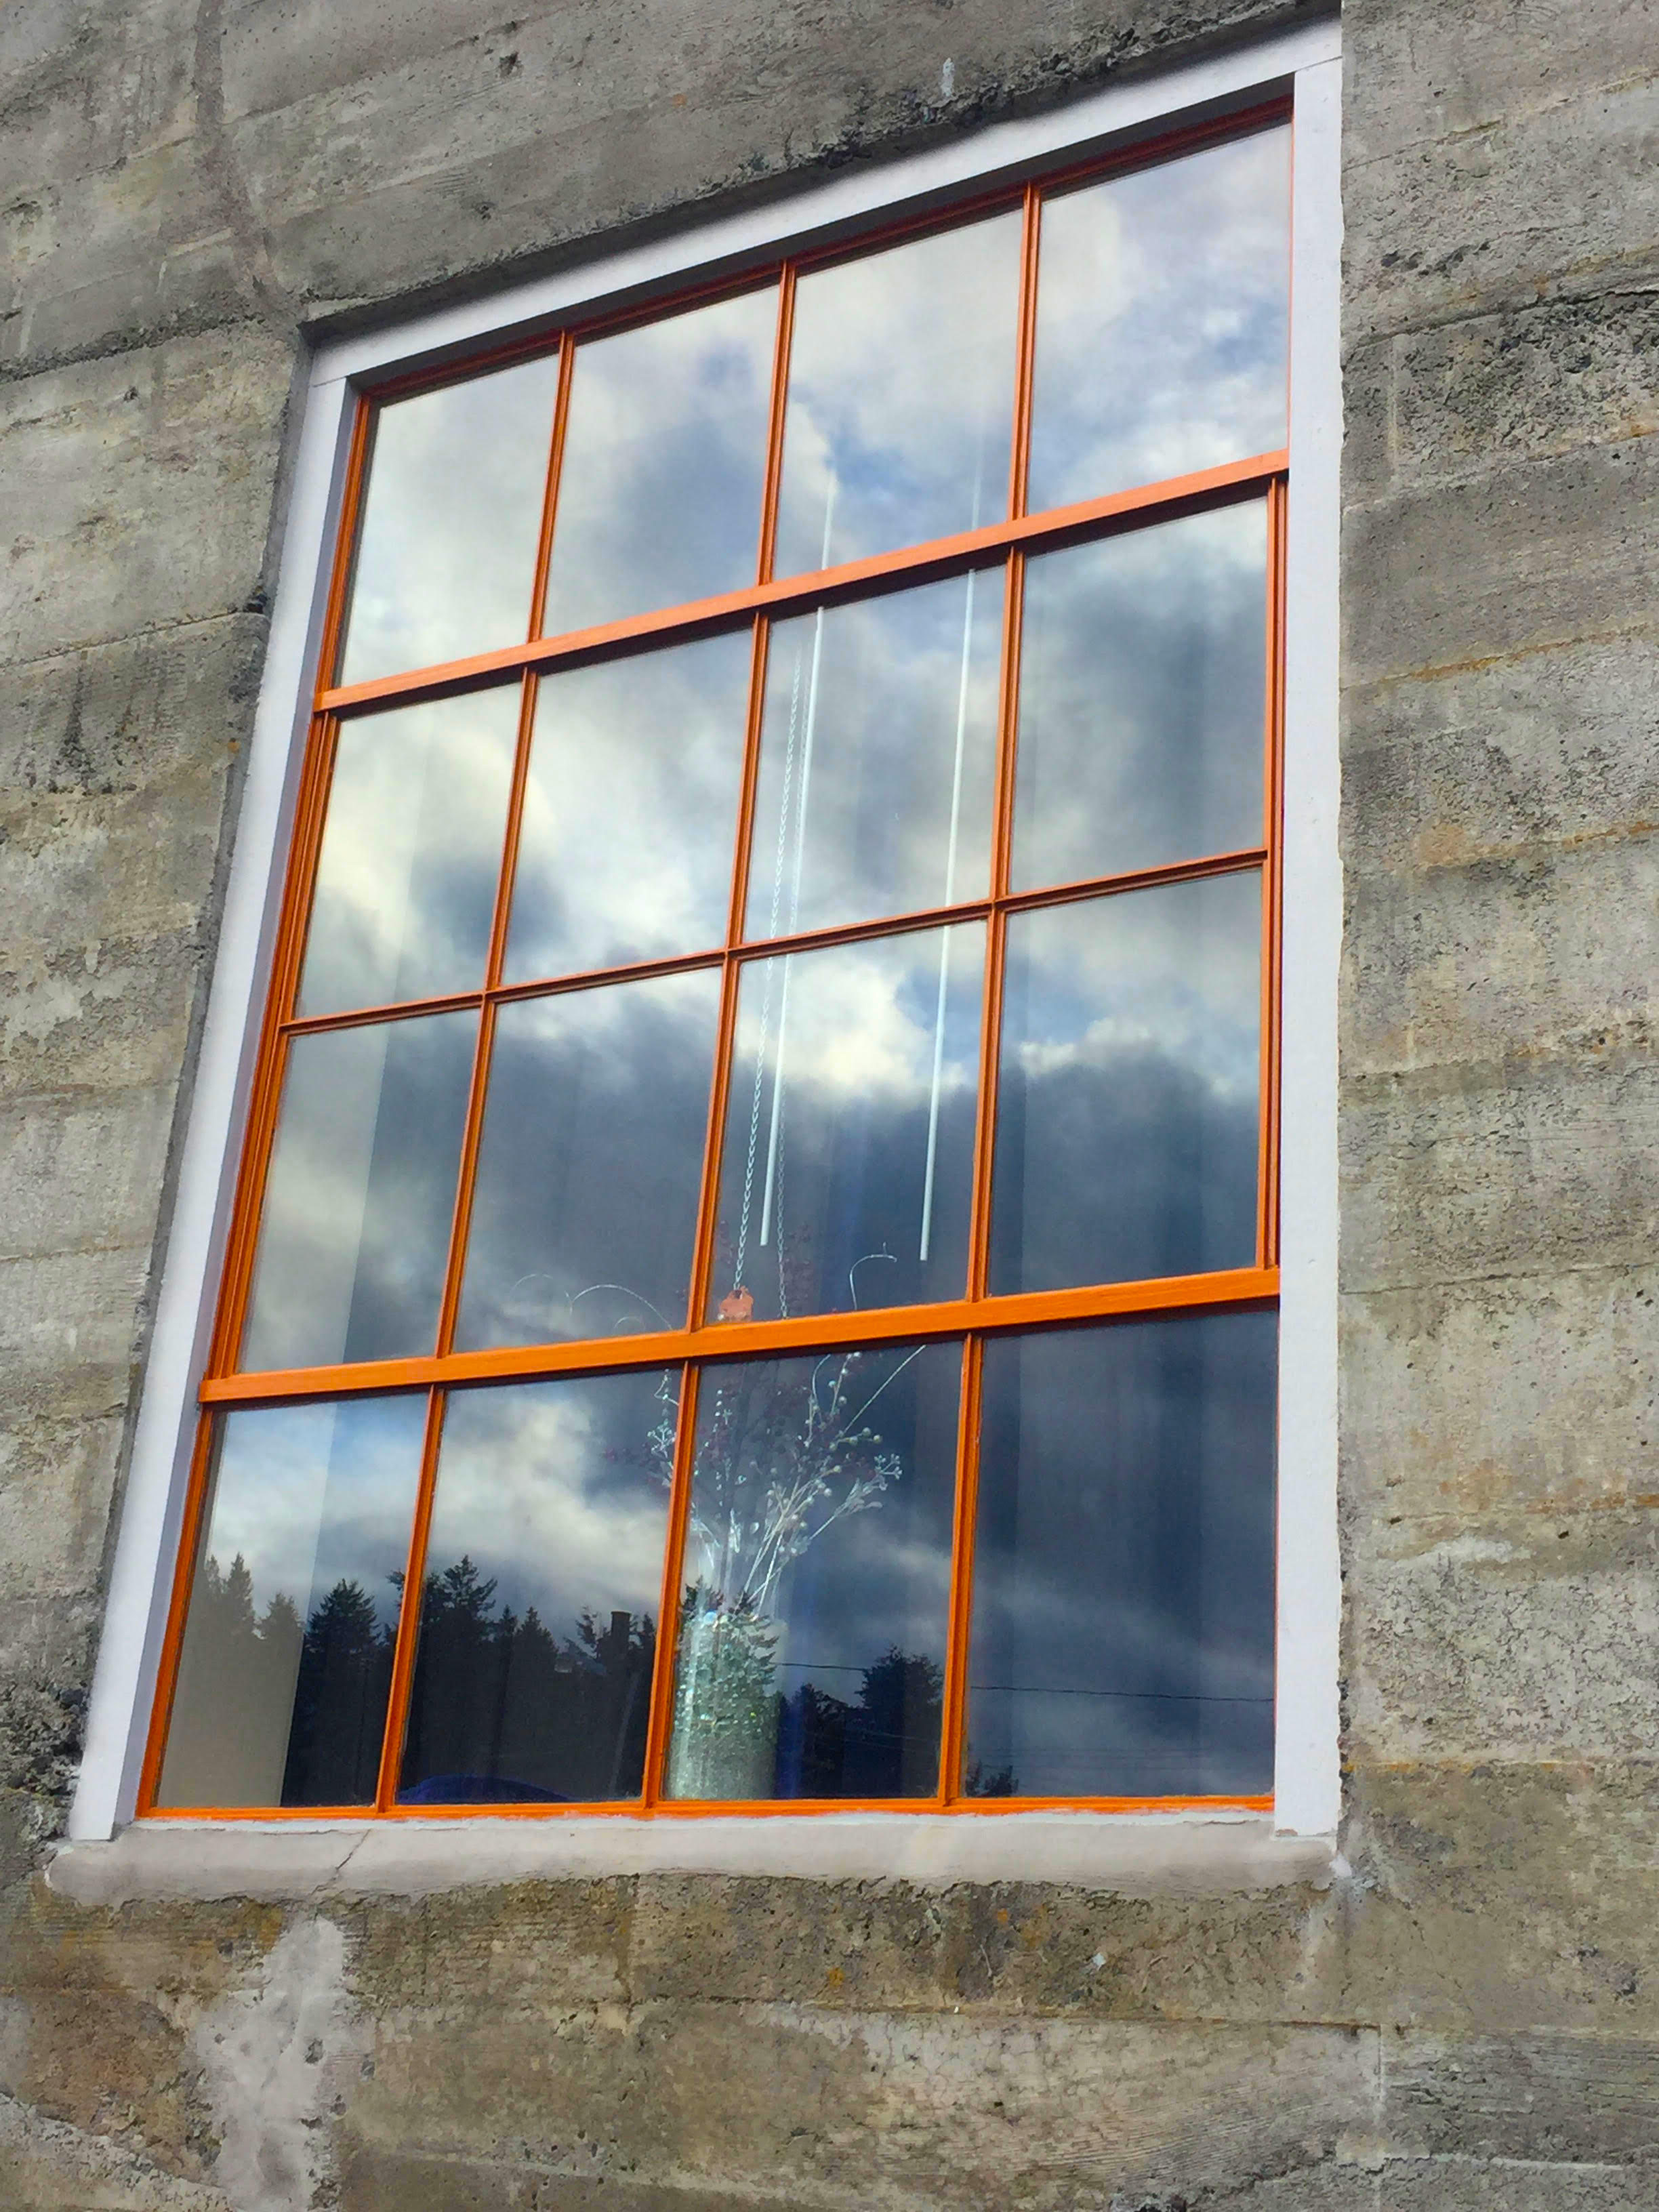 Steel Pane Windows - AFTER